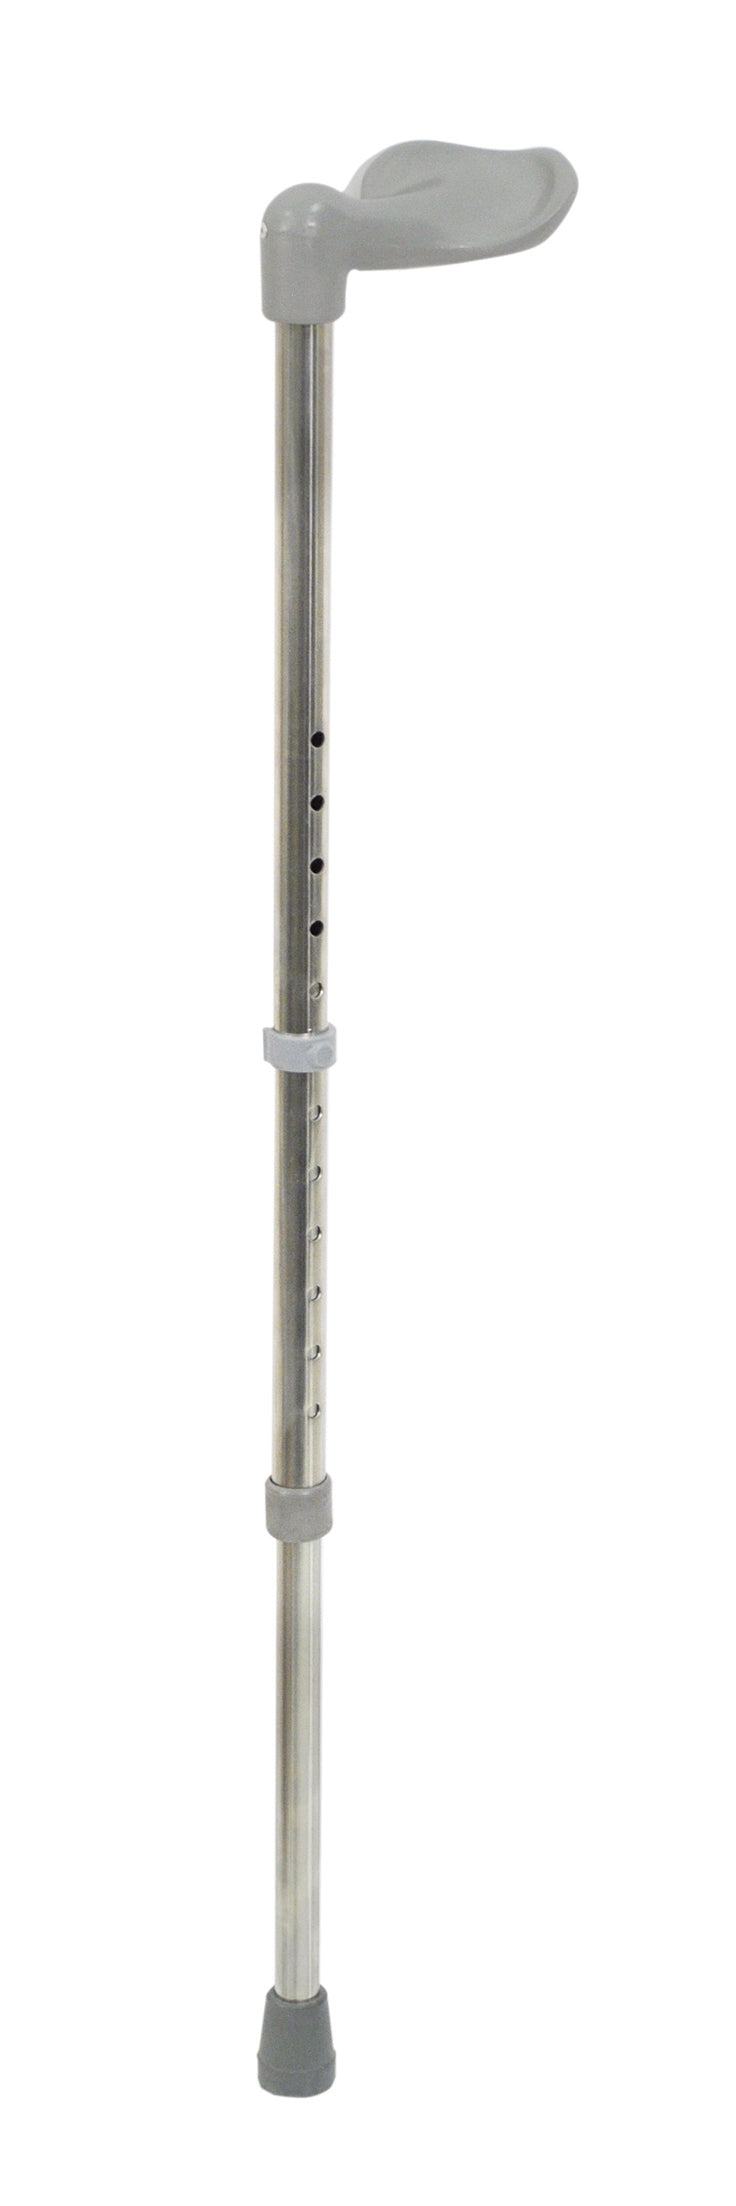 Ergonomic Large Aluminium Walking Stick.